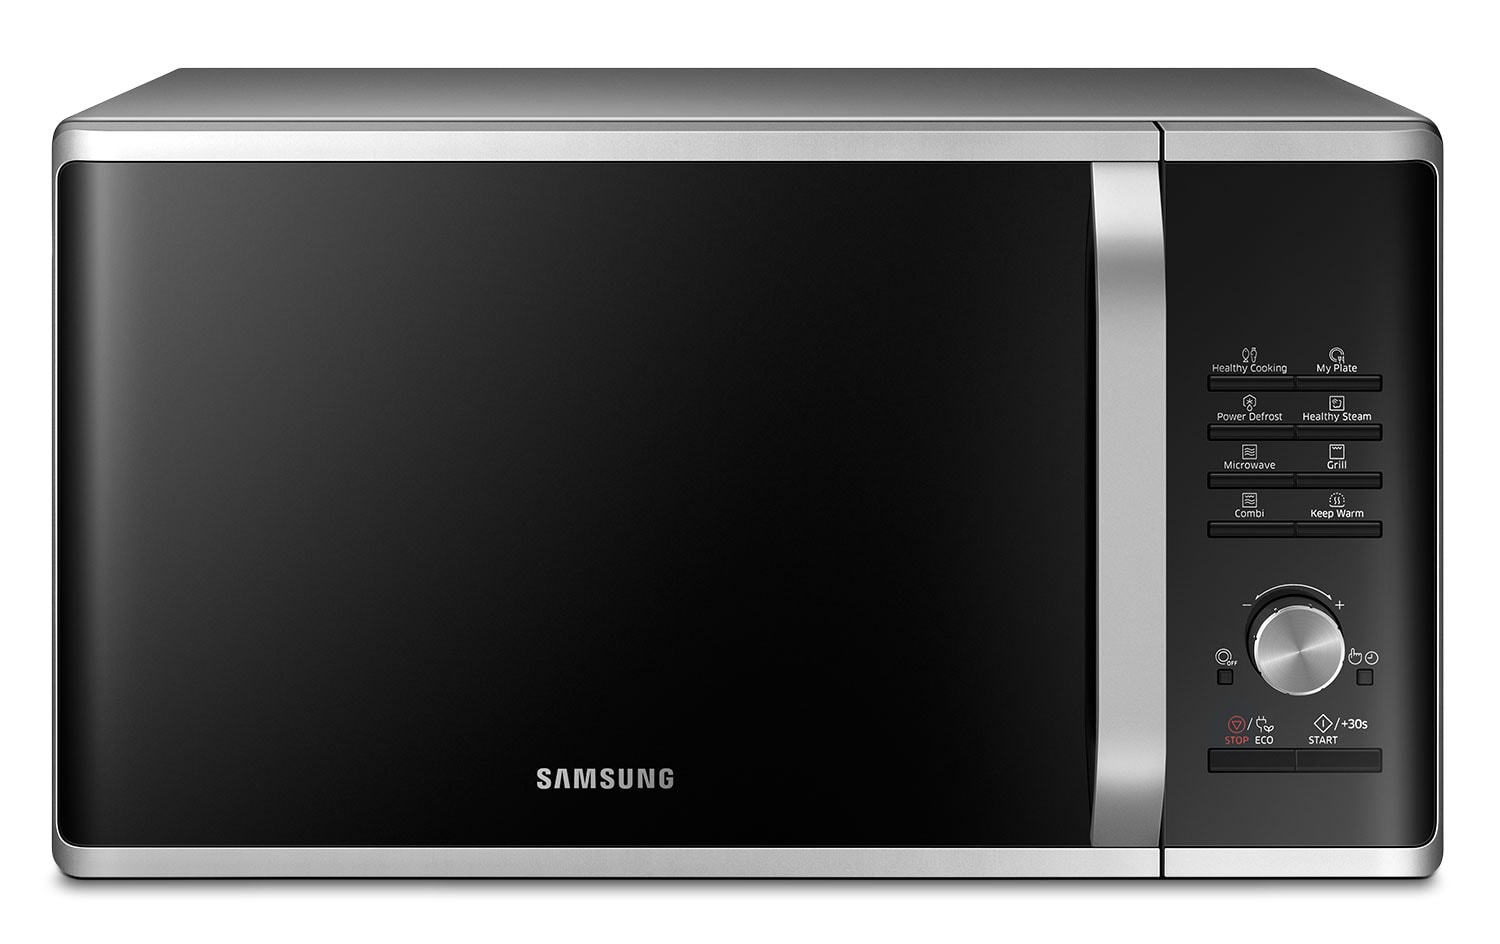 Samsung Countertop Microwave Home Depot : Cooking Products - Samsung Stainless Steel Countertop Microwave (1.1 ...